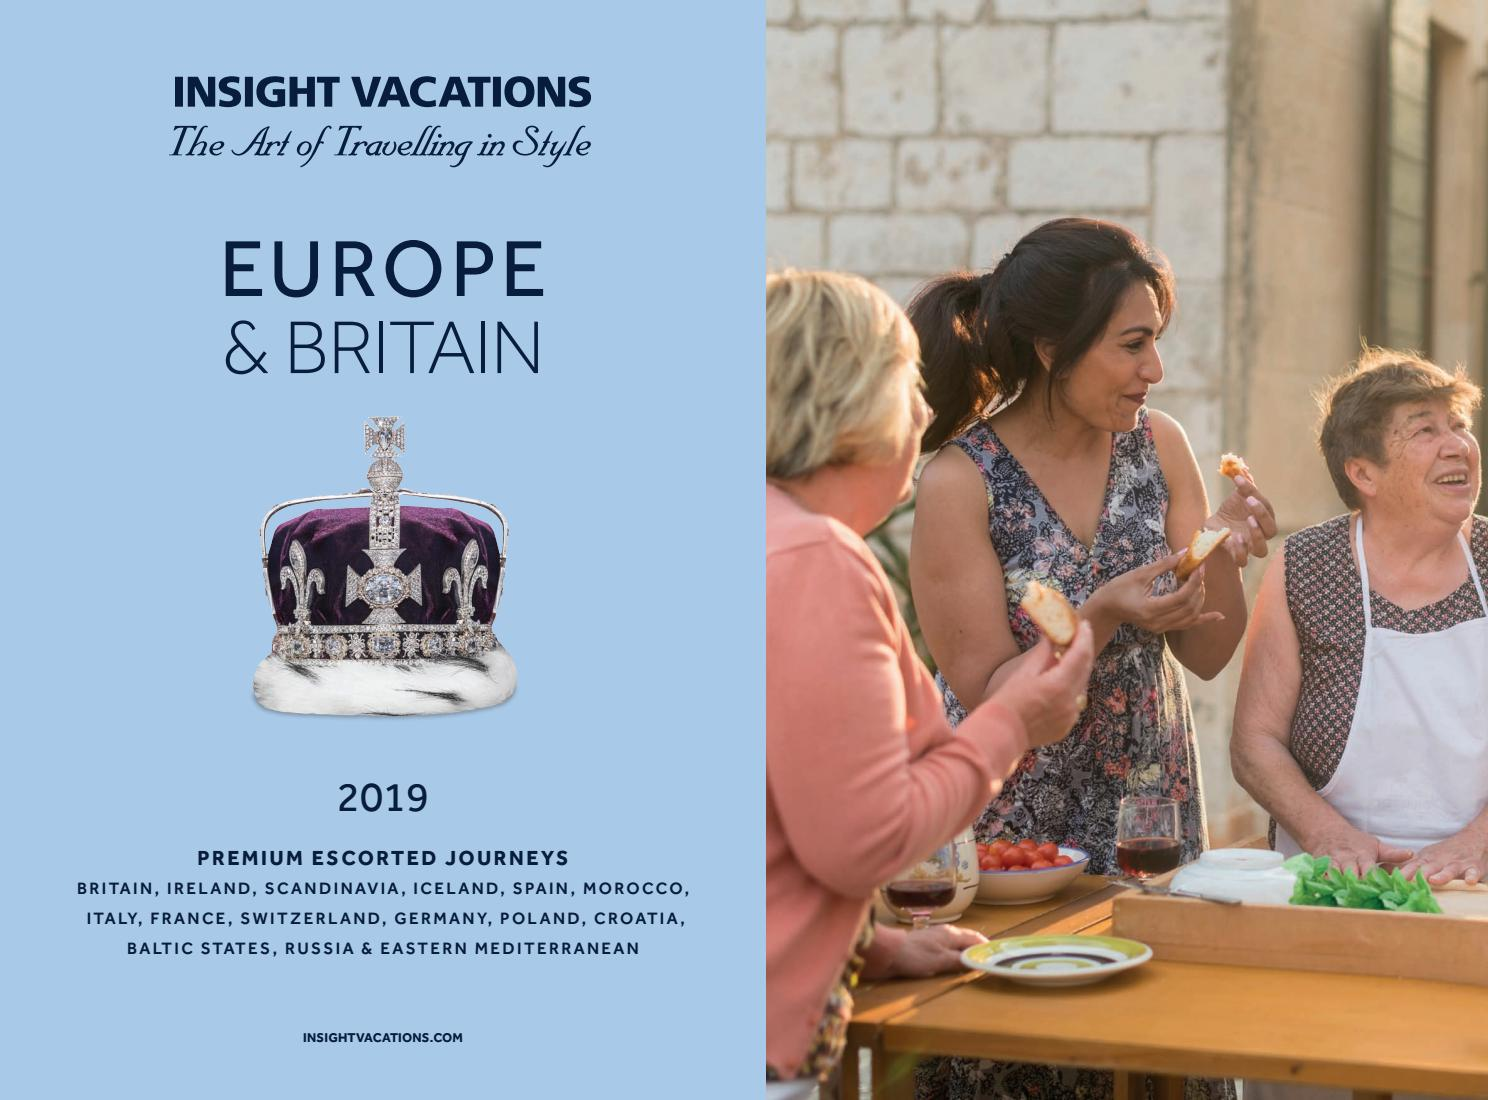 8b1d25d6785 Insight Vacations - Europe by Sunway Travel Group - issuu